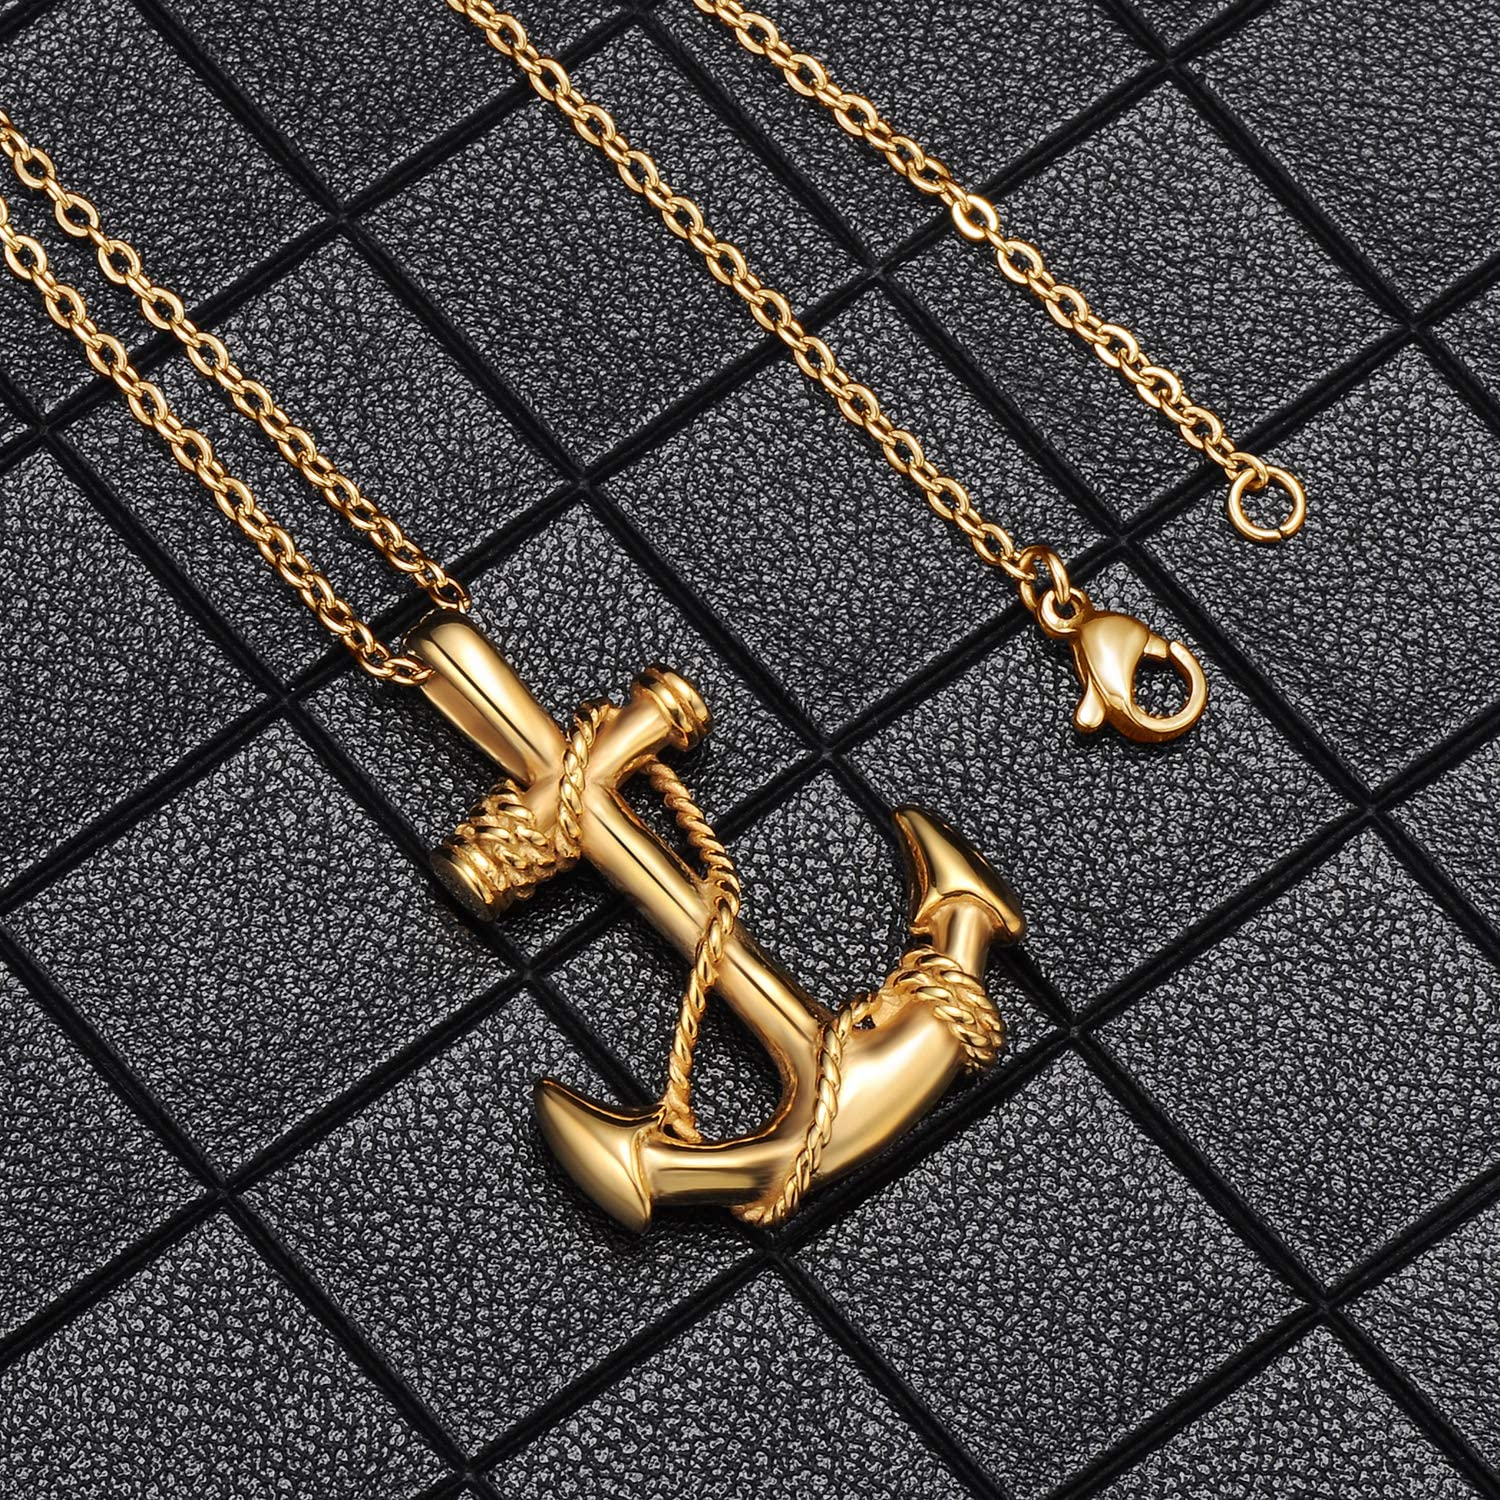 Feilok Stainless Steel Anchor Chain Nautical Pendant Chain Polishe Pirate of the Caribbean Sailing Necklace for Men